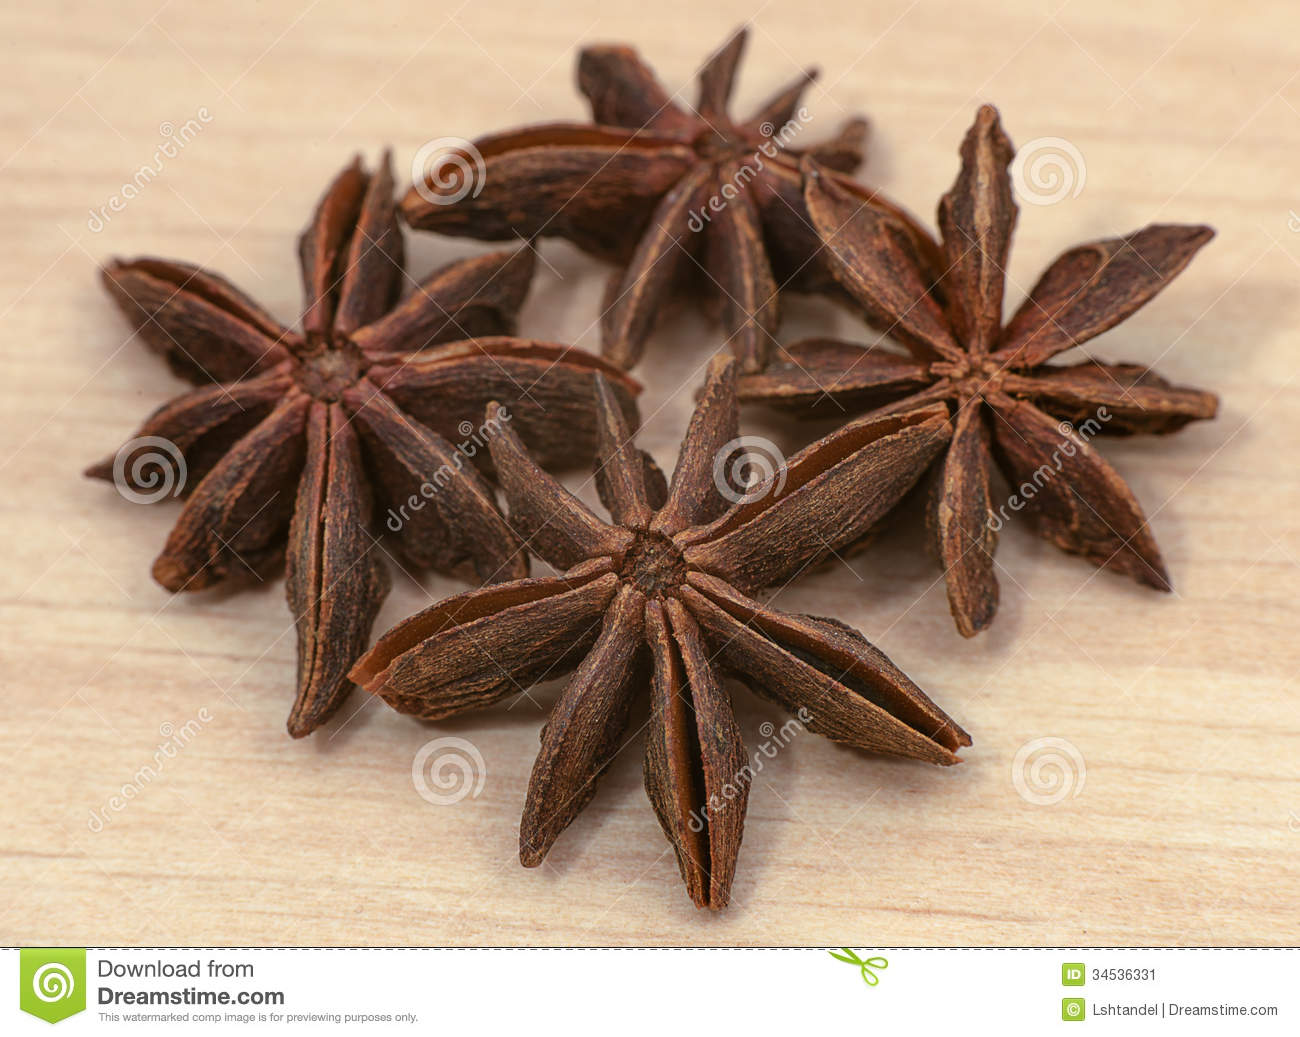 Star Anise. Dried Seeds Of The Plant Pimpinella Anisum L. Stock.